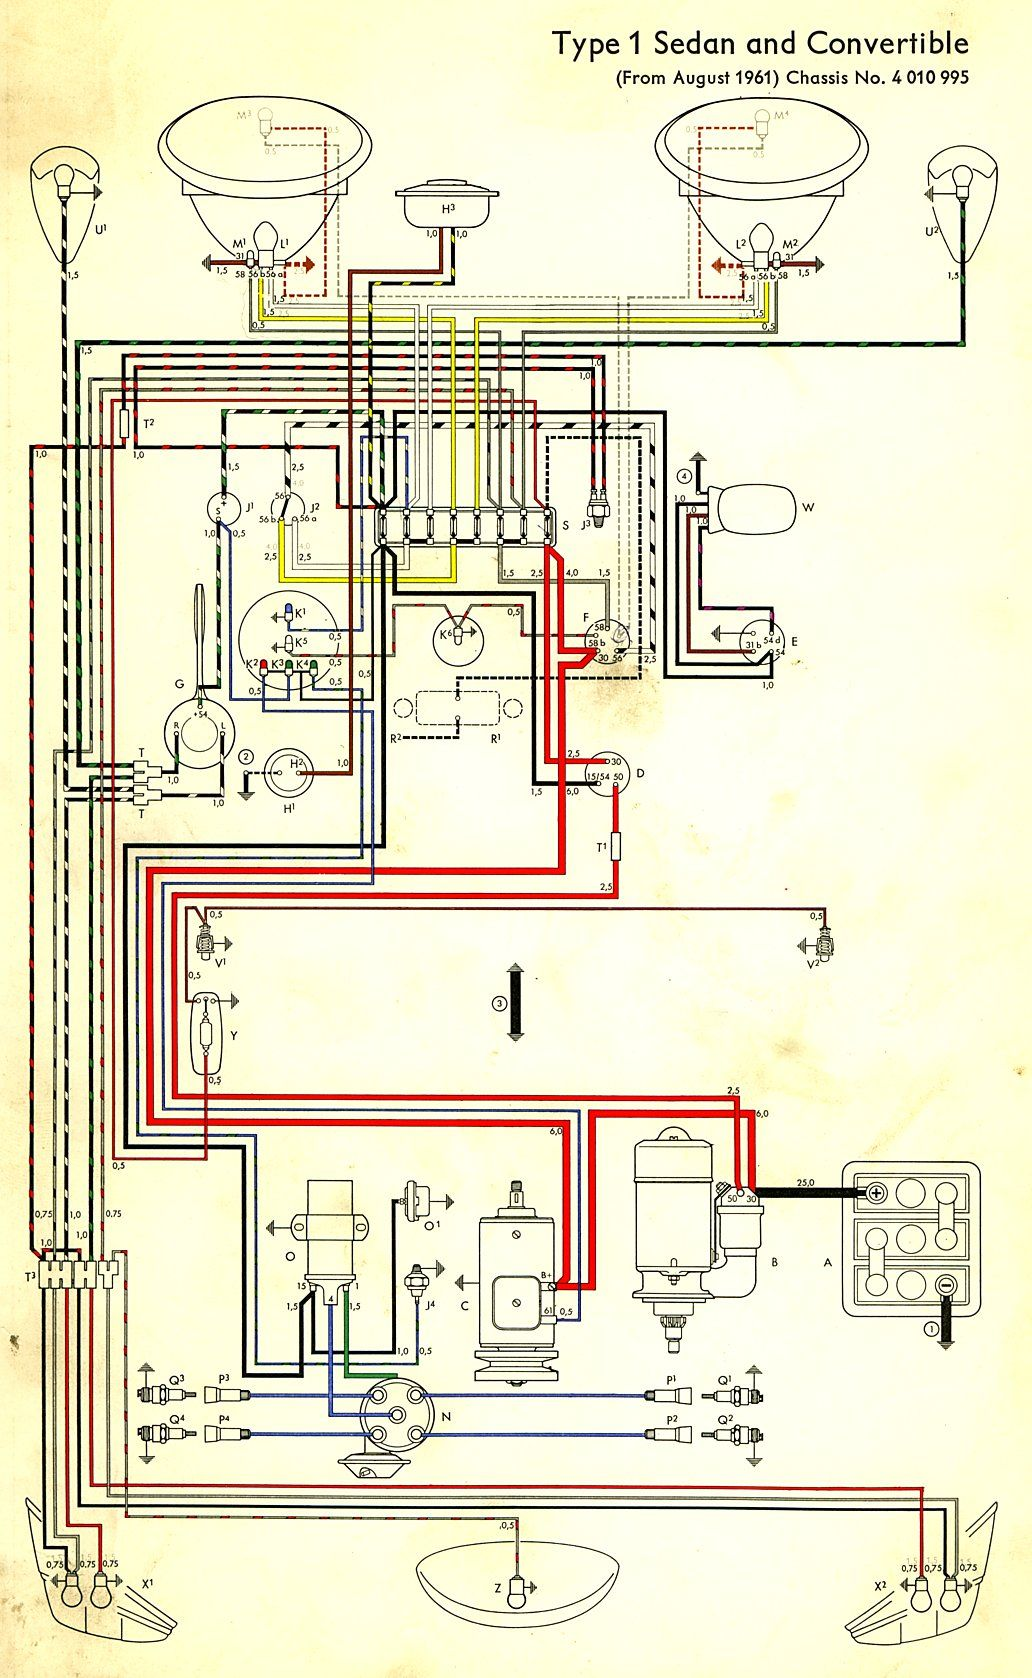 small resolution of wiring diagram in color 1964 vw bug beetle convertible the samba 1964 vw beetle wiring diagram 1964 volkswagen wiring diagram